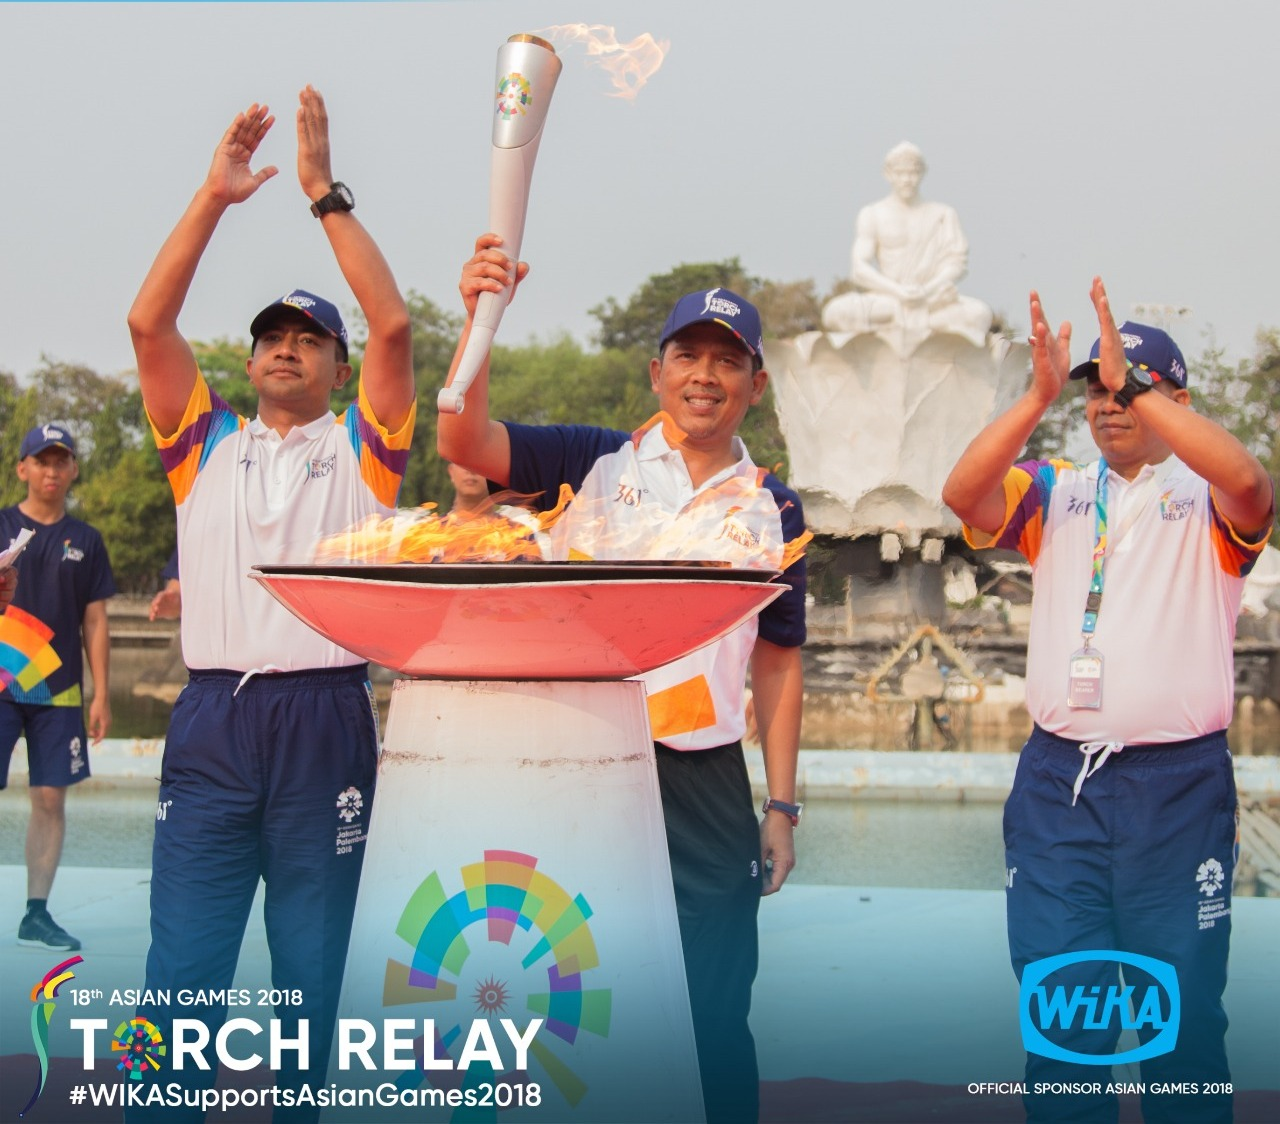 Torch Relay Asian Games 2018 - Purwakarta